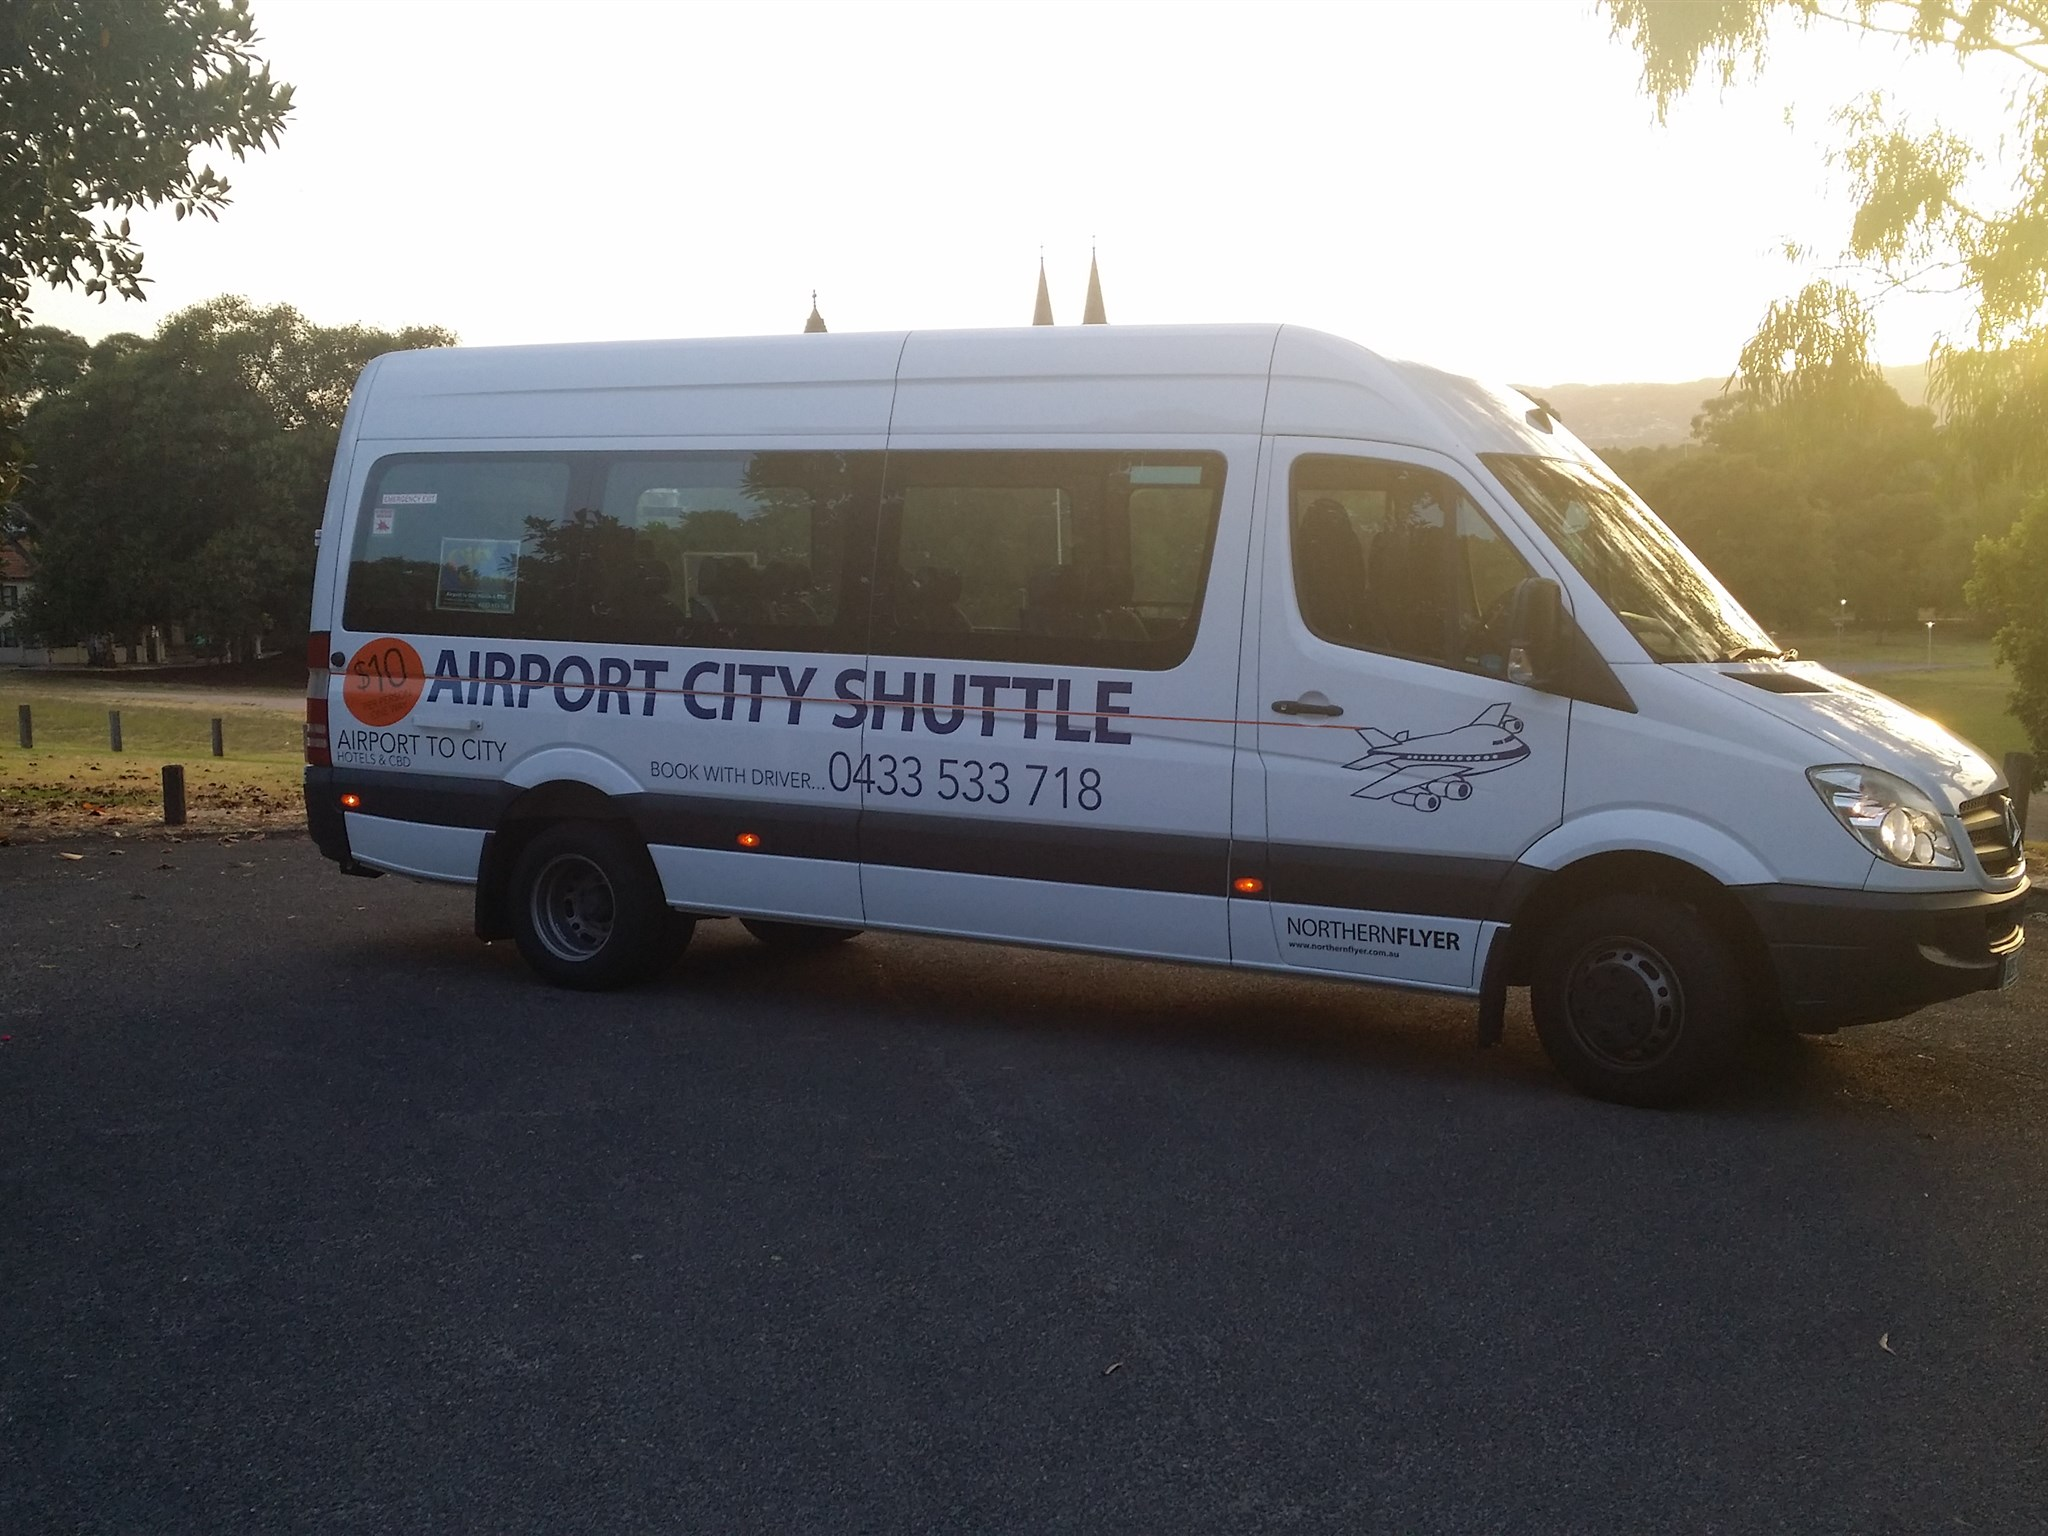 Airport city shuttle